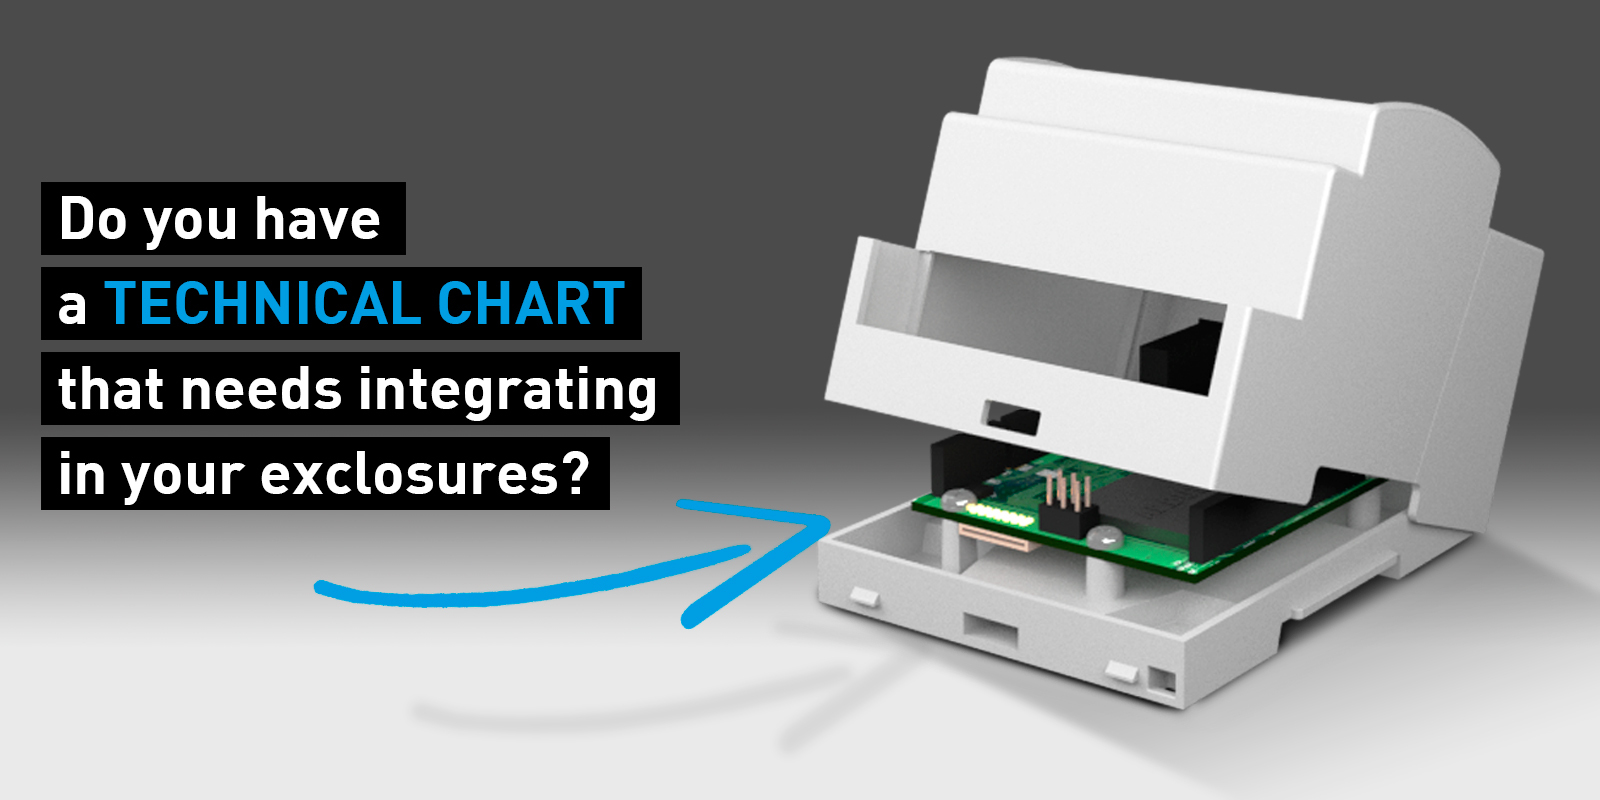 DO YOU HAVE A TECHNICAL CHART THAT NEEDS INTEGRATING IN YOUR ENCLOSURES? ITALTRONIC, AT YOUR SERVICE.